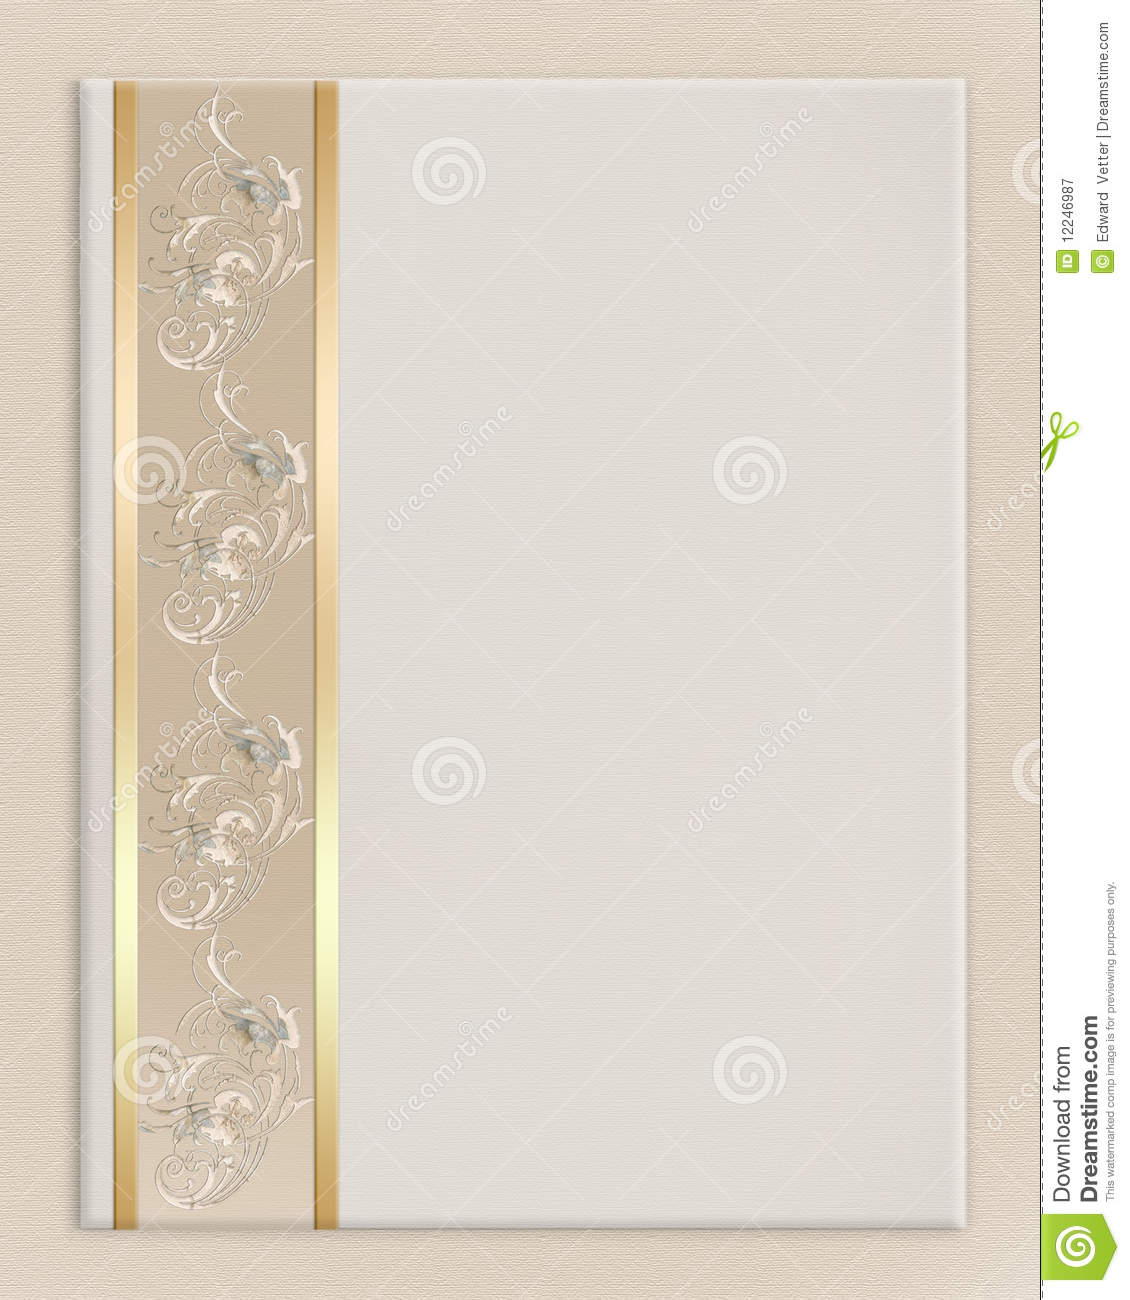 Wedding Invitation Border Elegant Stock Illustration Illustration